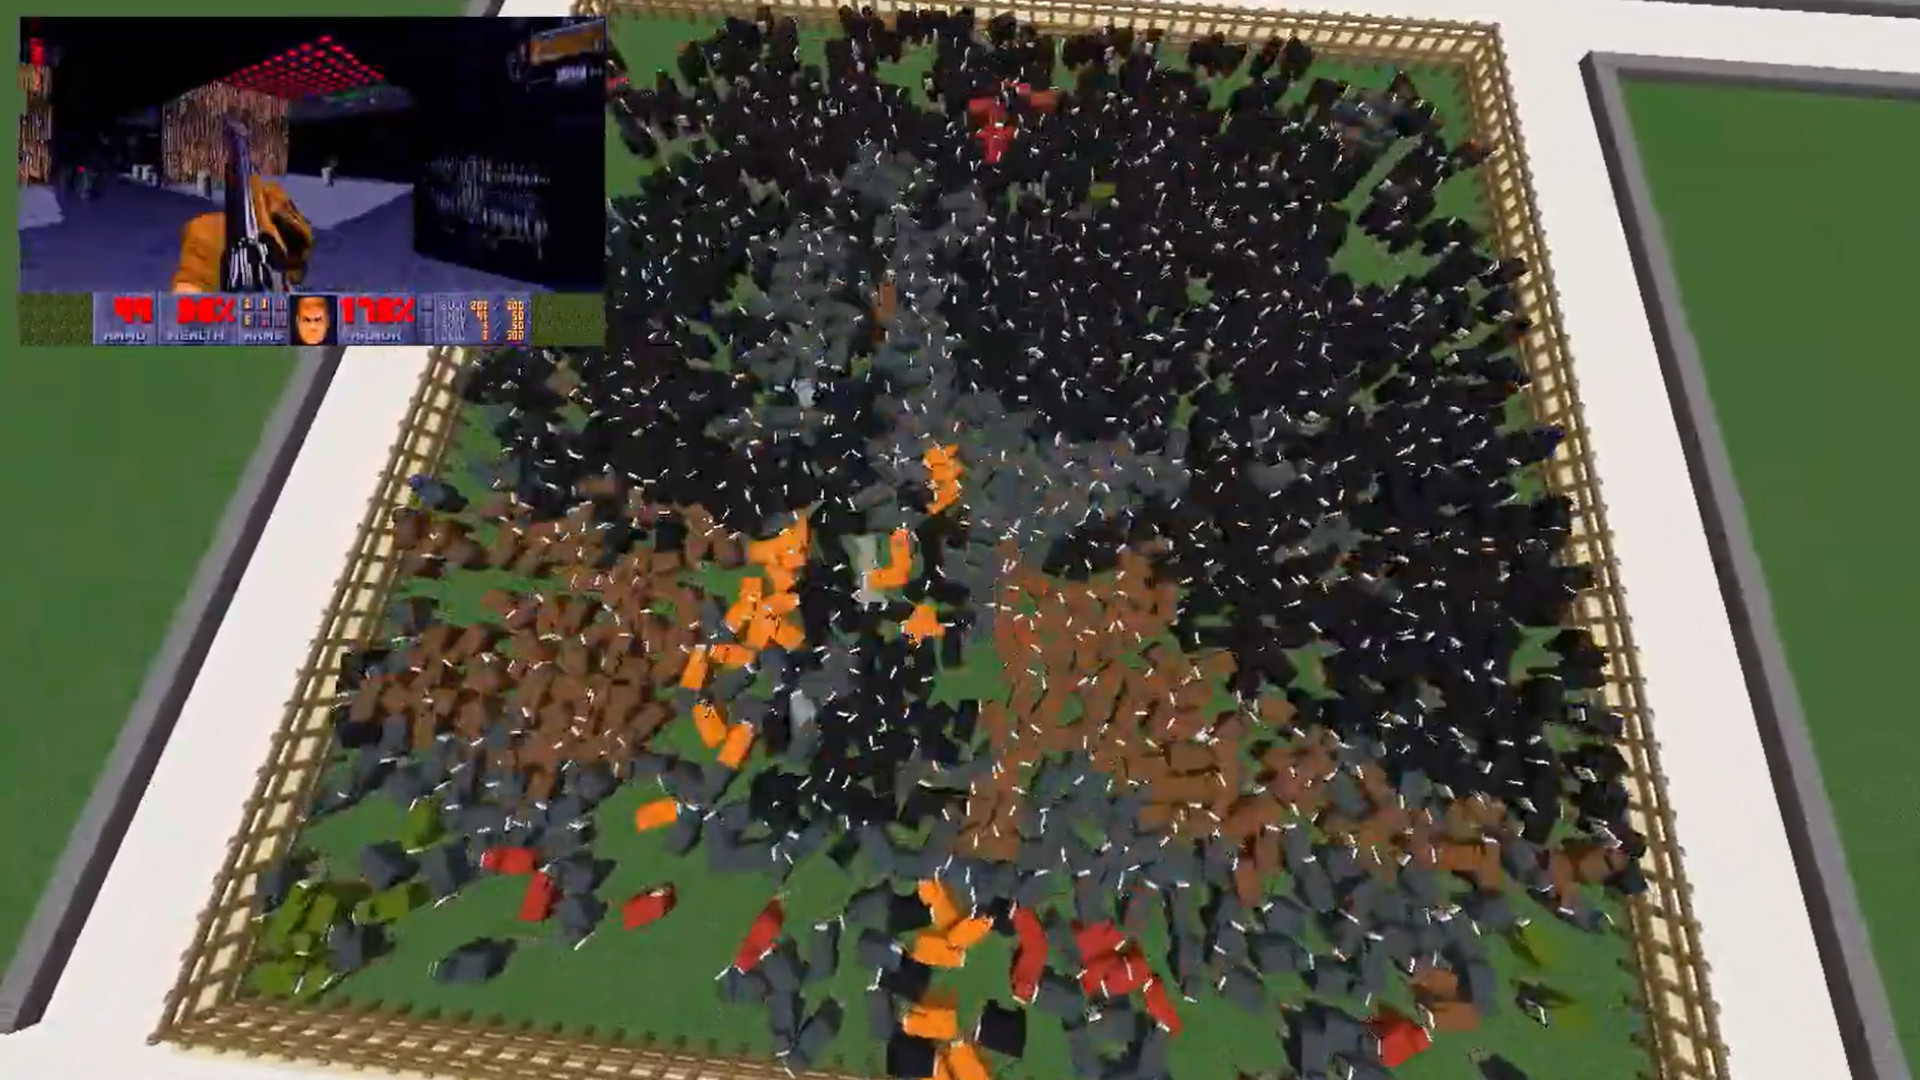 Here's a Minecraft modder playing Doom on some sheep